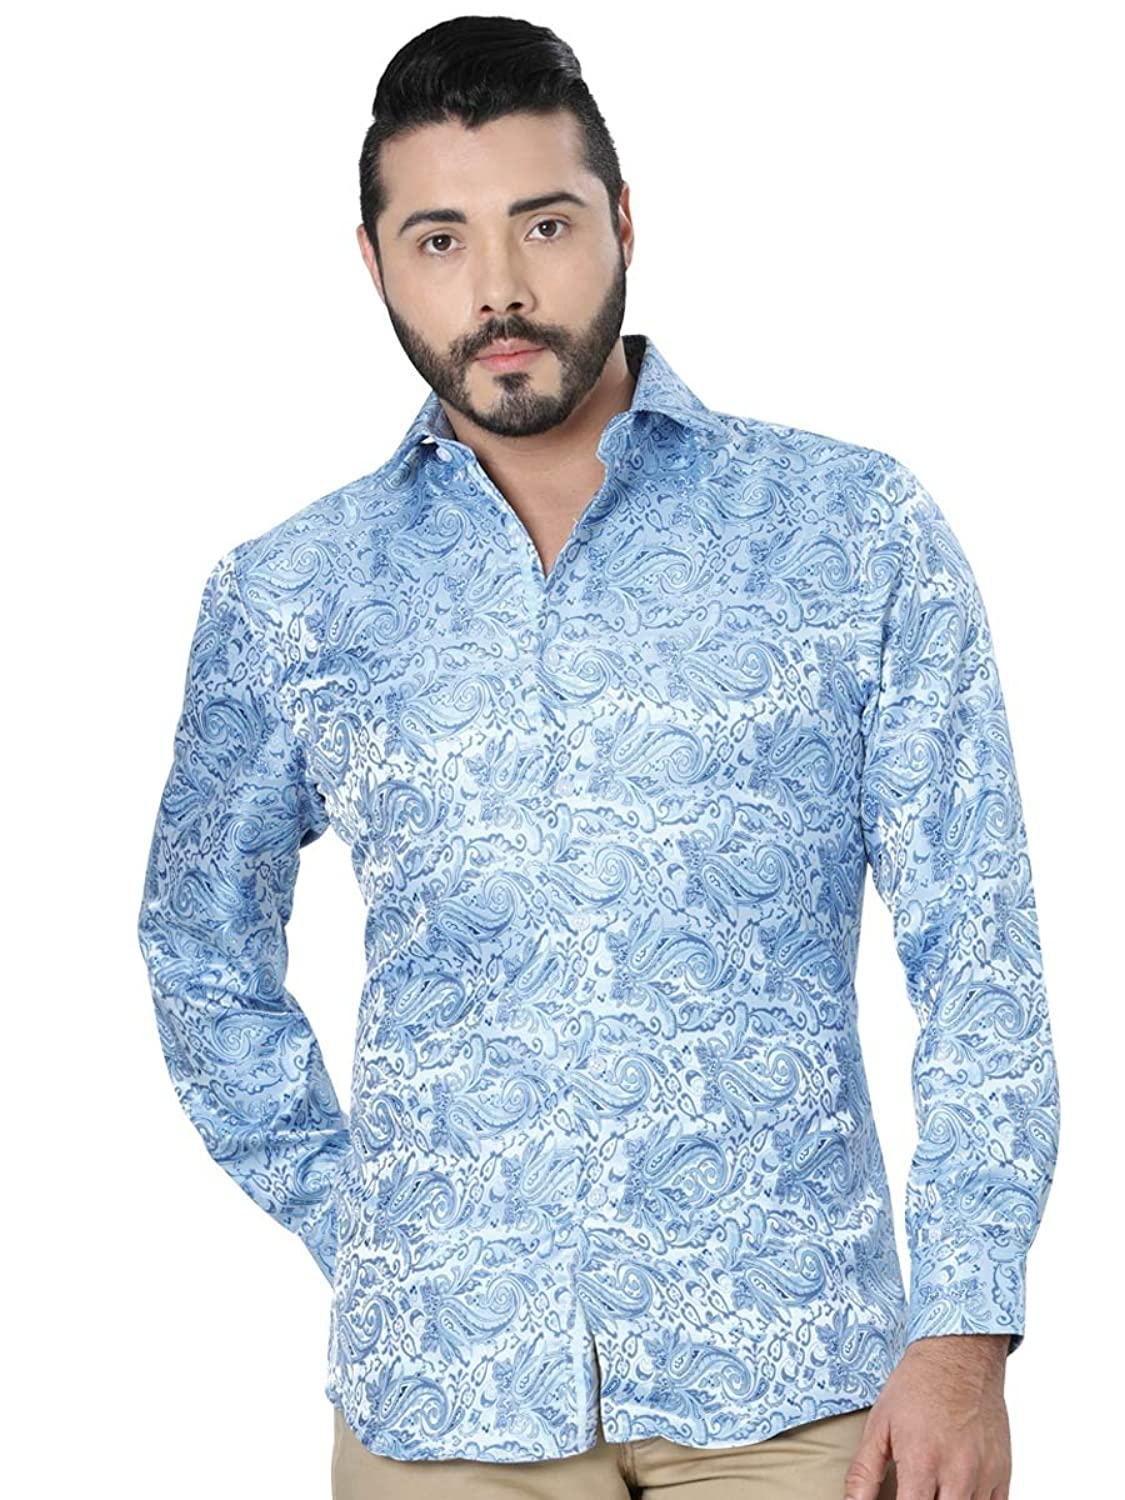 Camisa Casual M/Larga Centenario 100% Microfiber ID 41193 CW2G Azul Claro at Amazon Mens Clothing store: